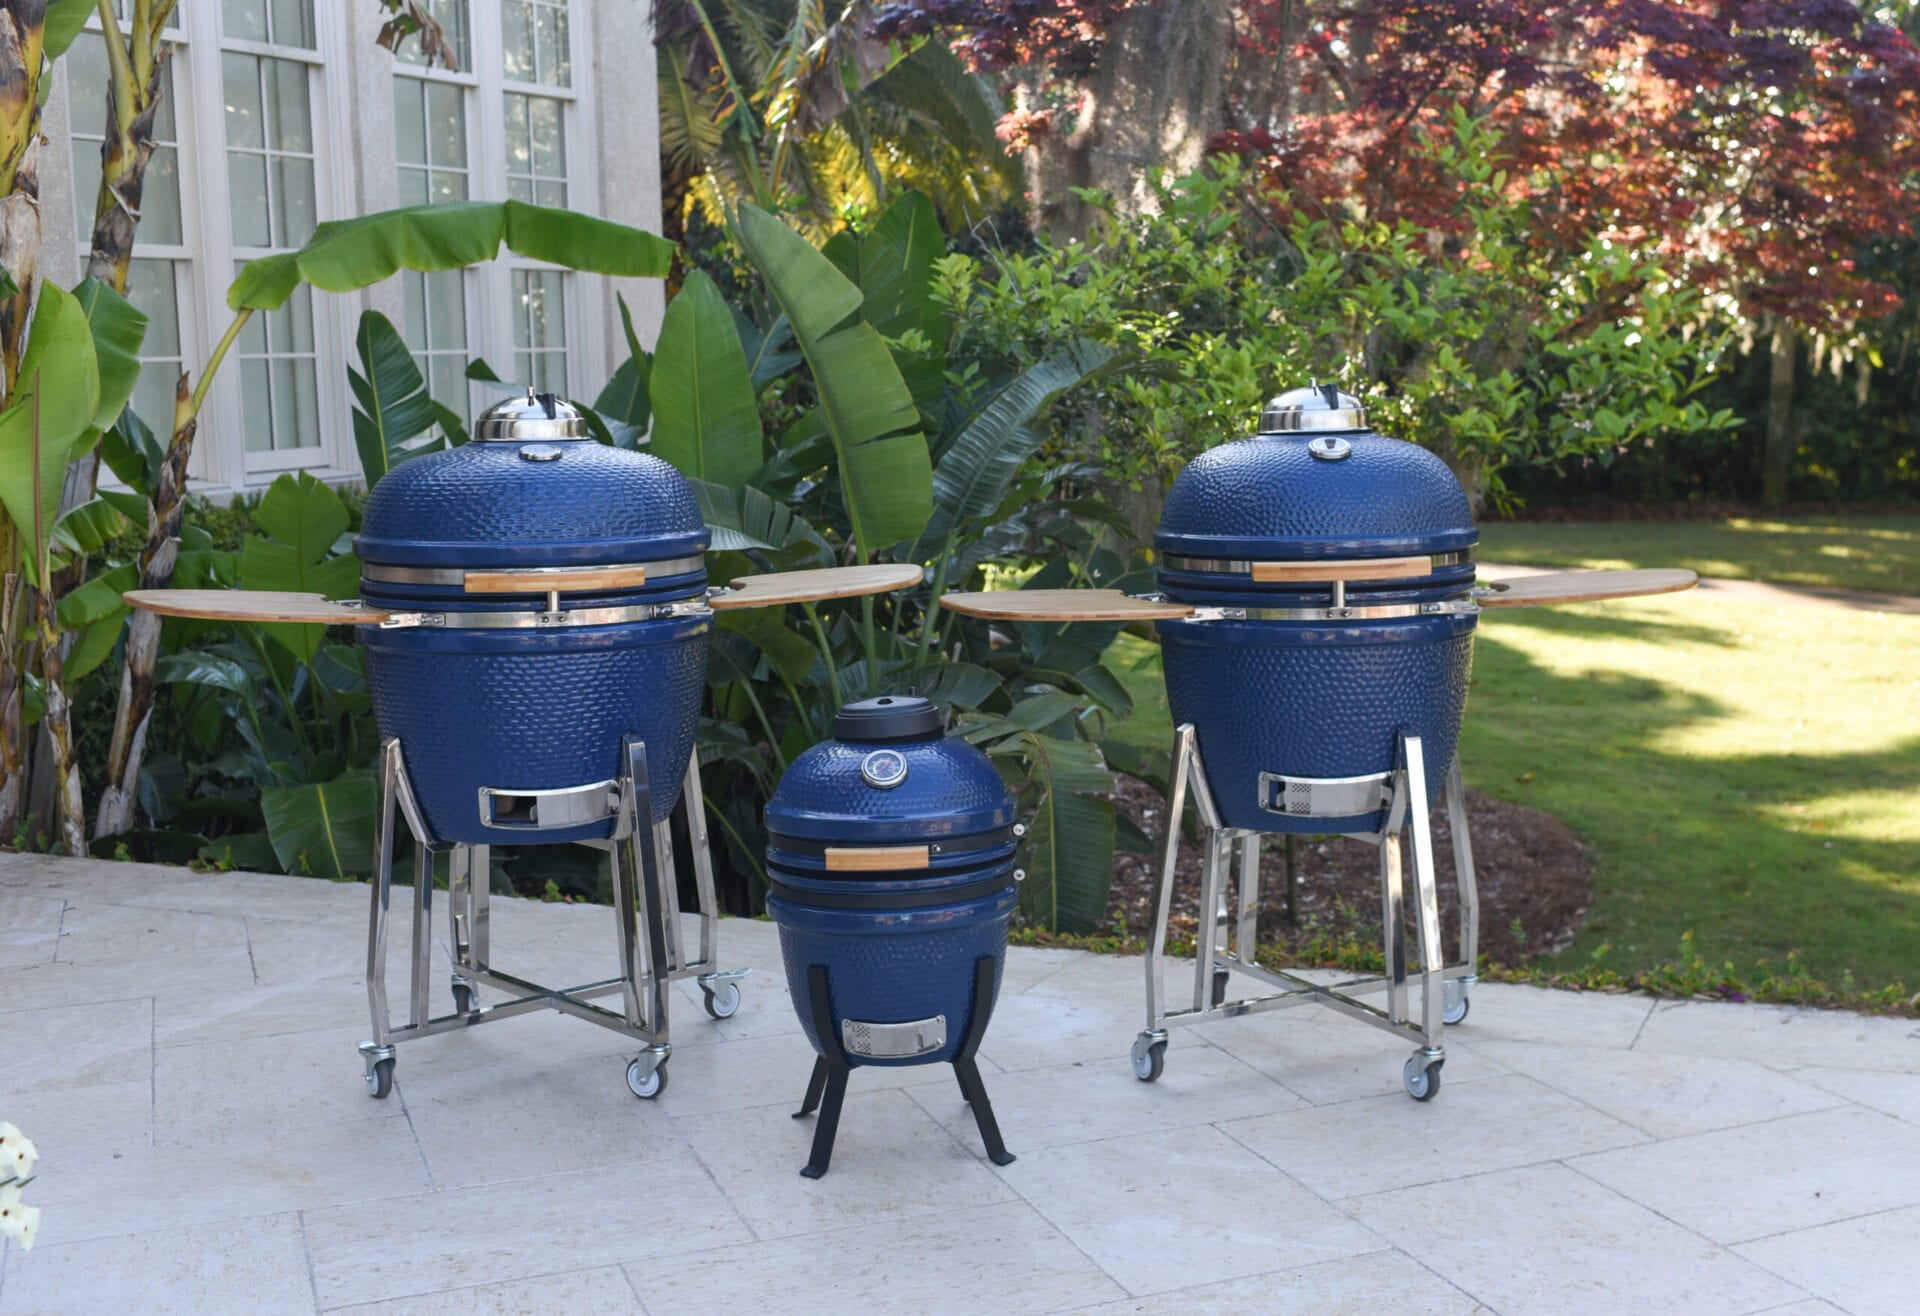 https://eglobalnv.com/wp-content/uploads/2020/06/Kamado-All-Open_edit-scaled.jpg